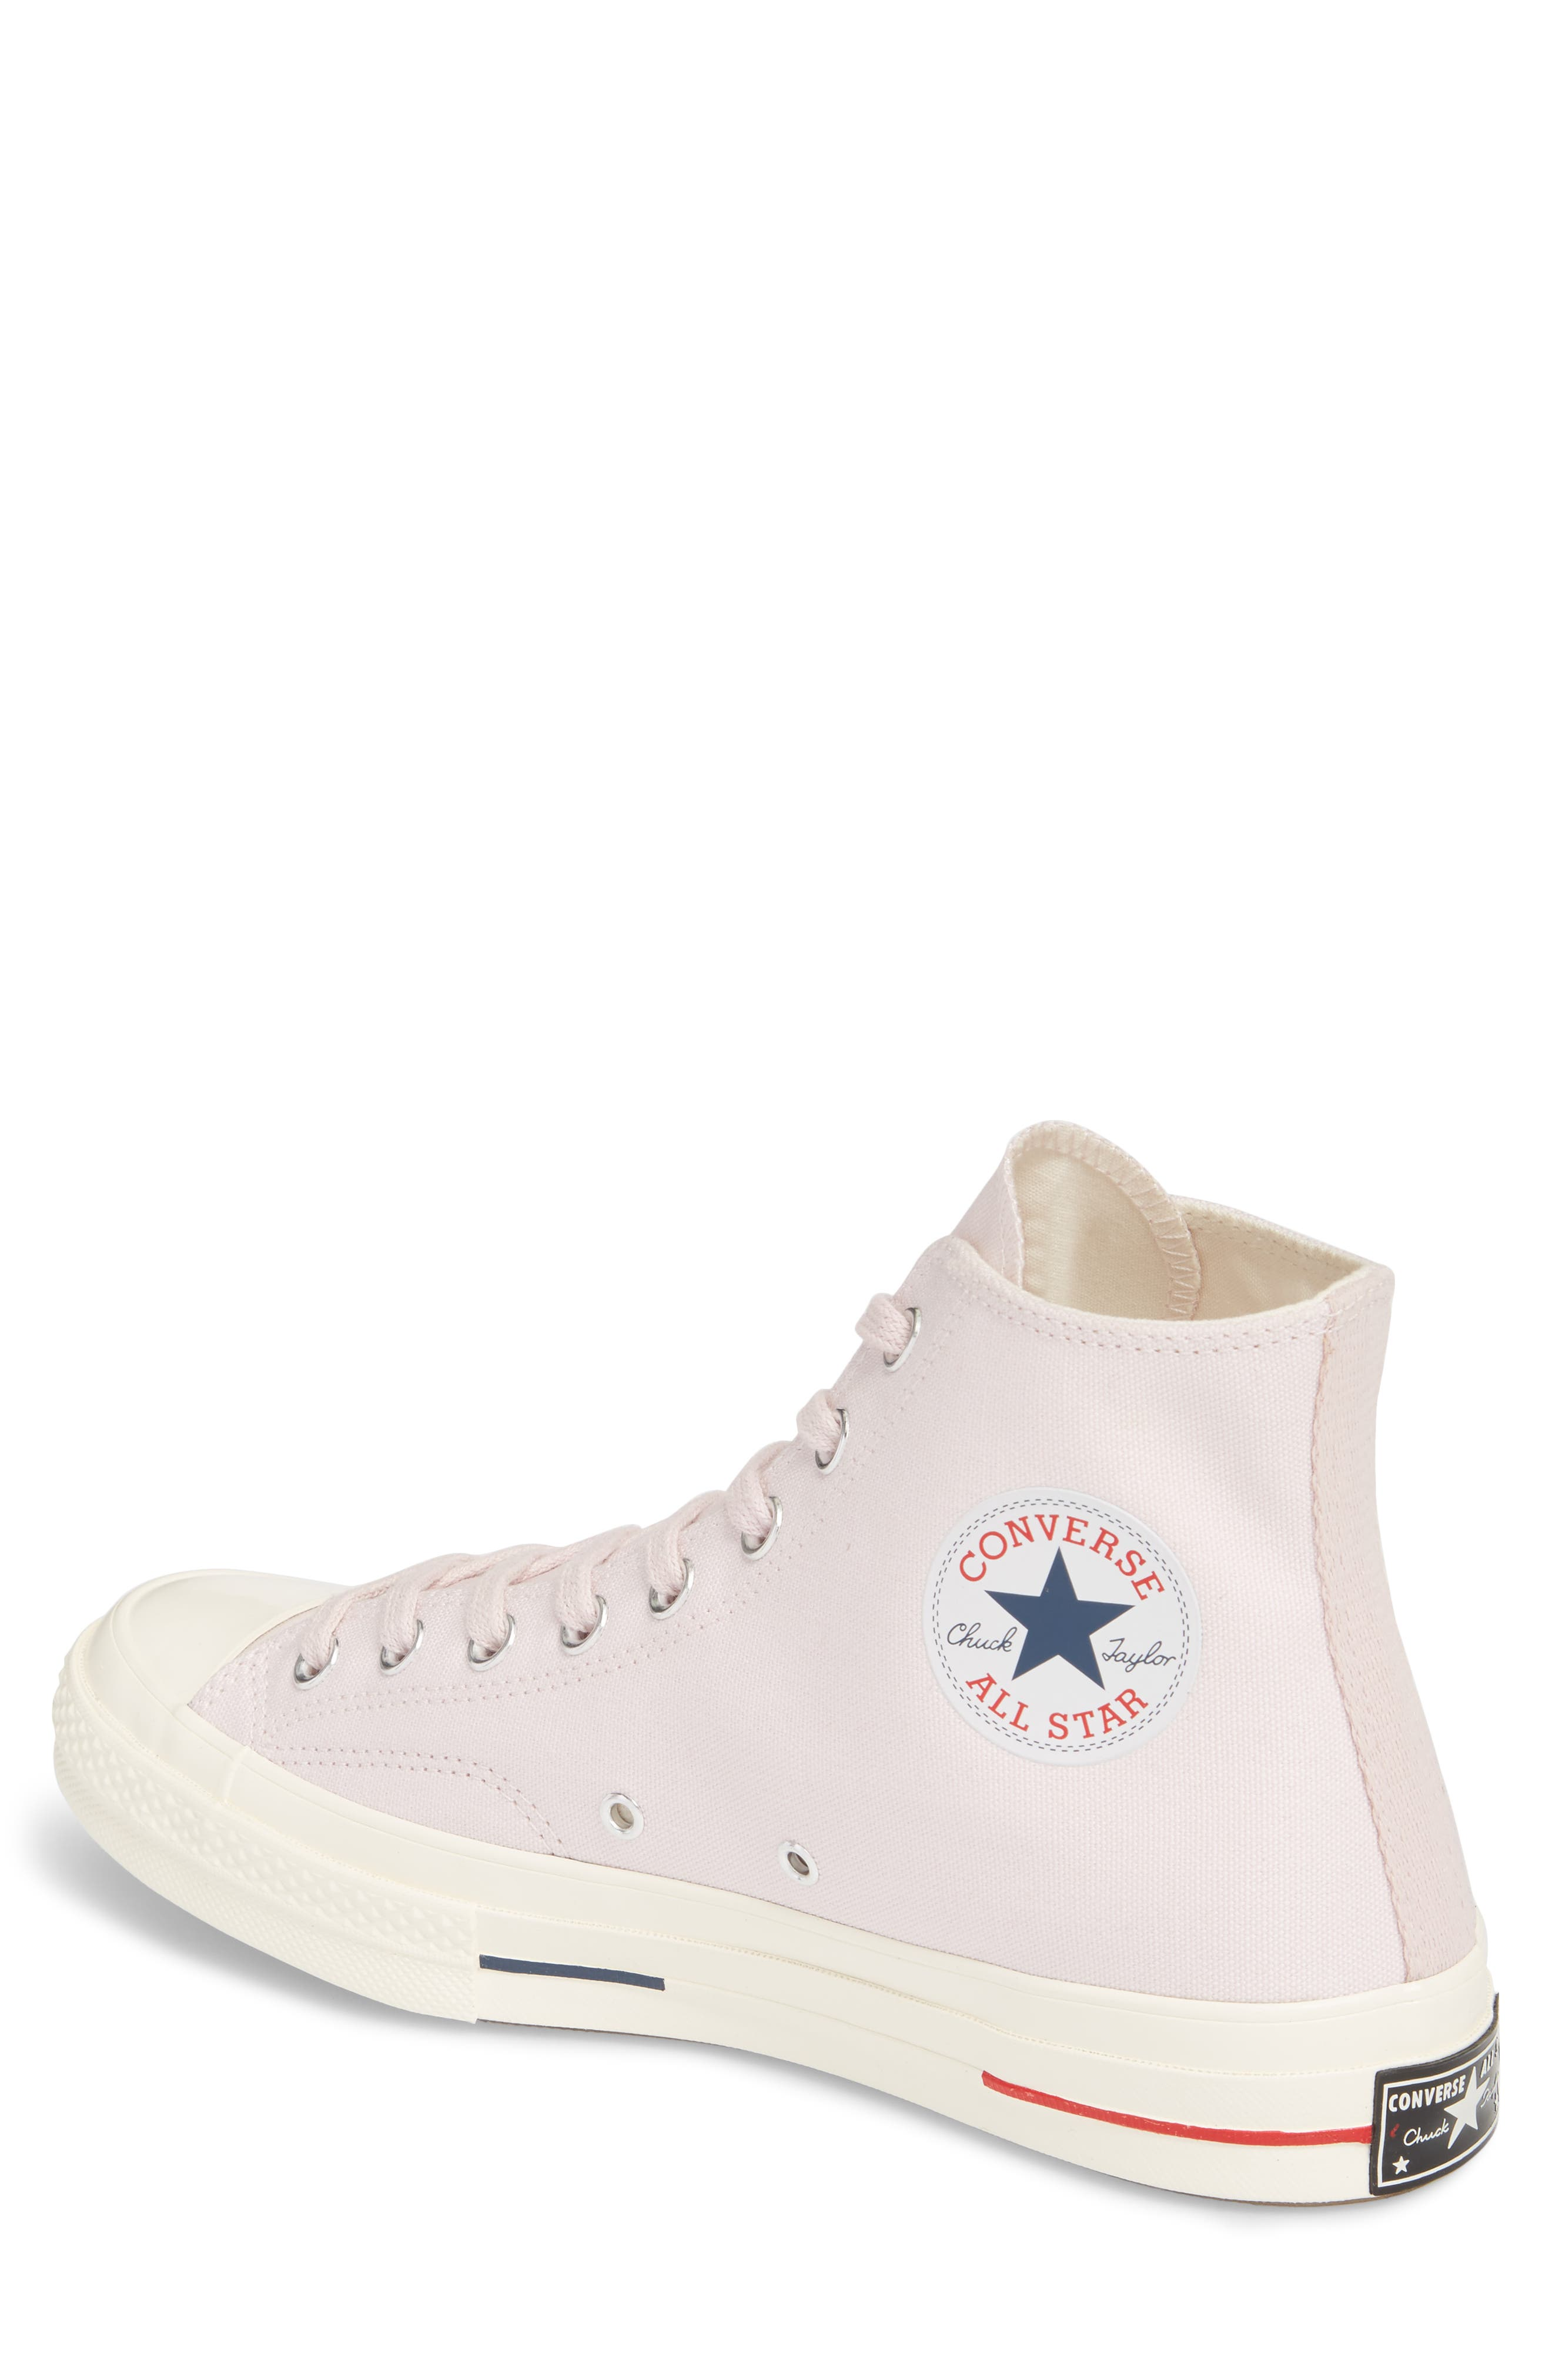 Chuck Taylor<sup>®</sup> All Star<sup>®</sup> '70 Heritage High Top Sneaker,                             Alternate thumbnail 2, color,                             653